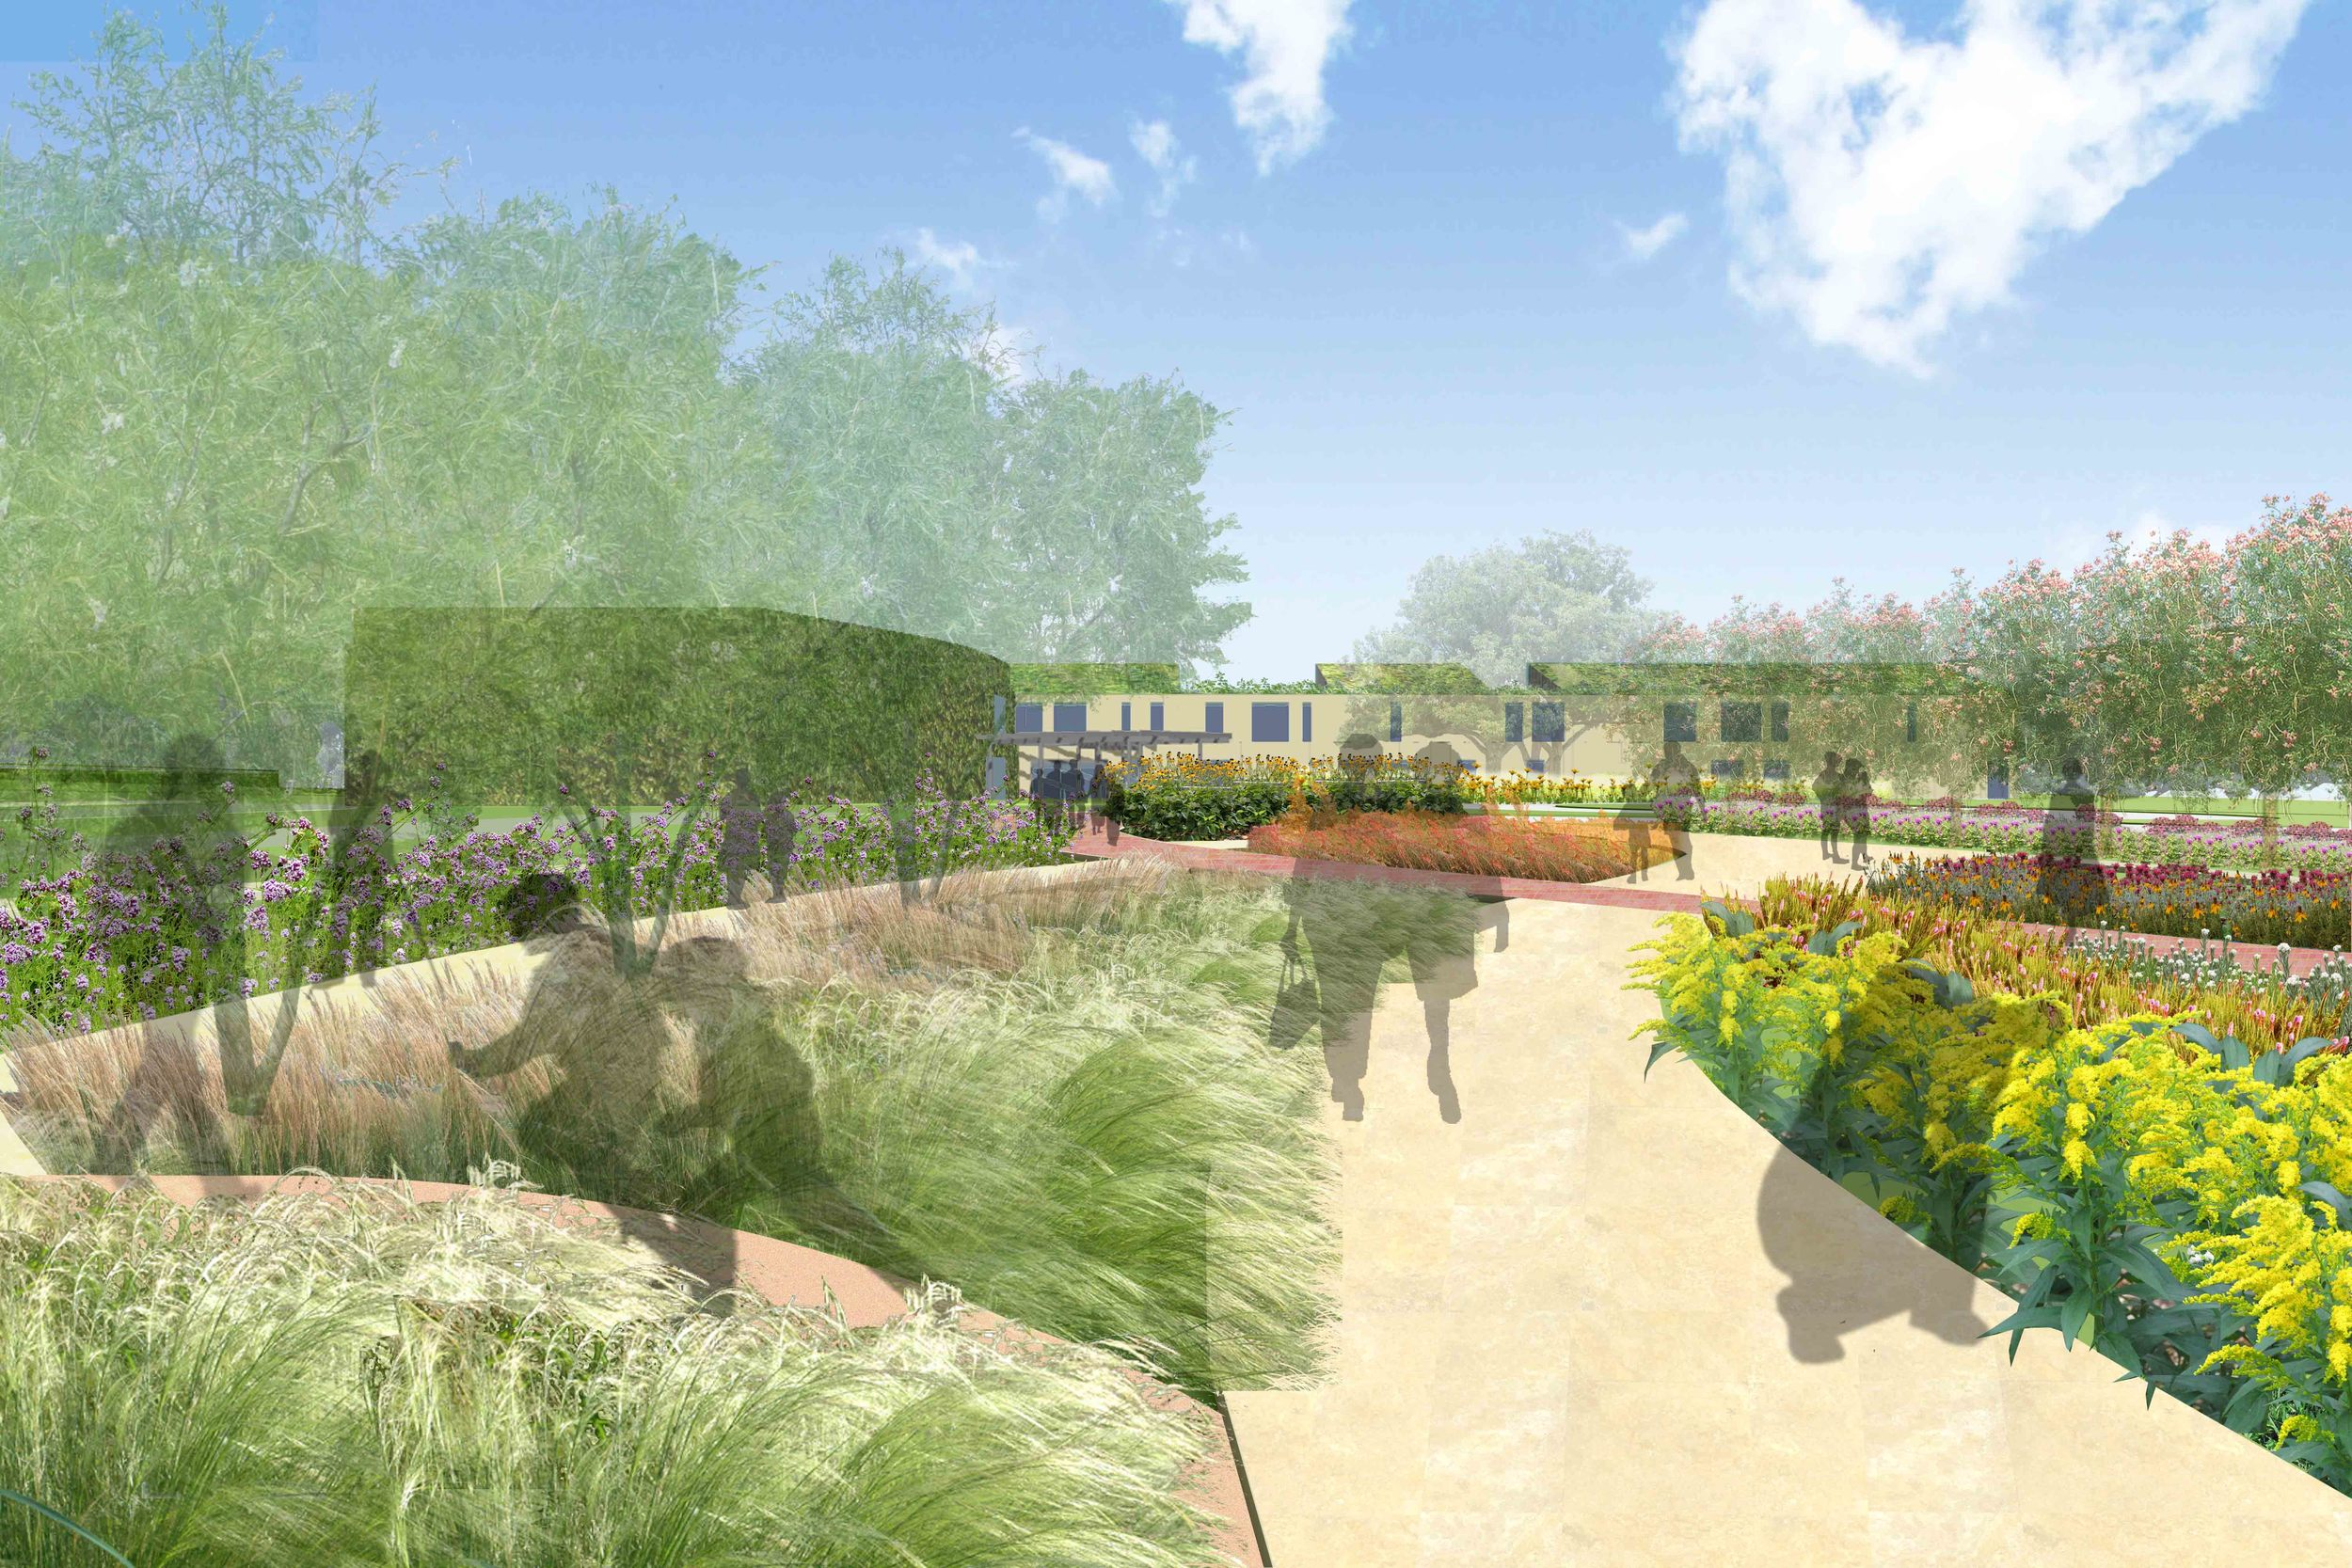 BA_Botanical Research Institute_rendering.jpg